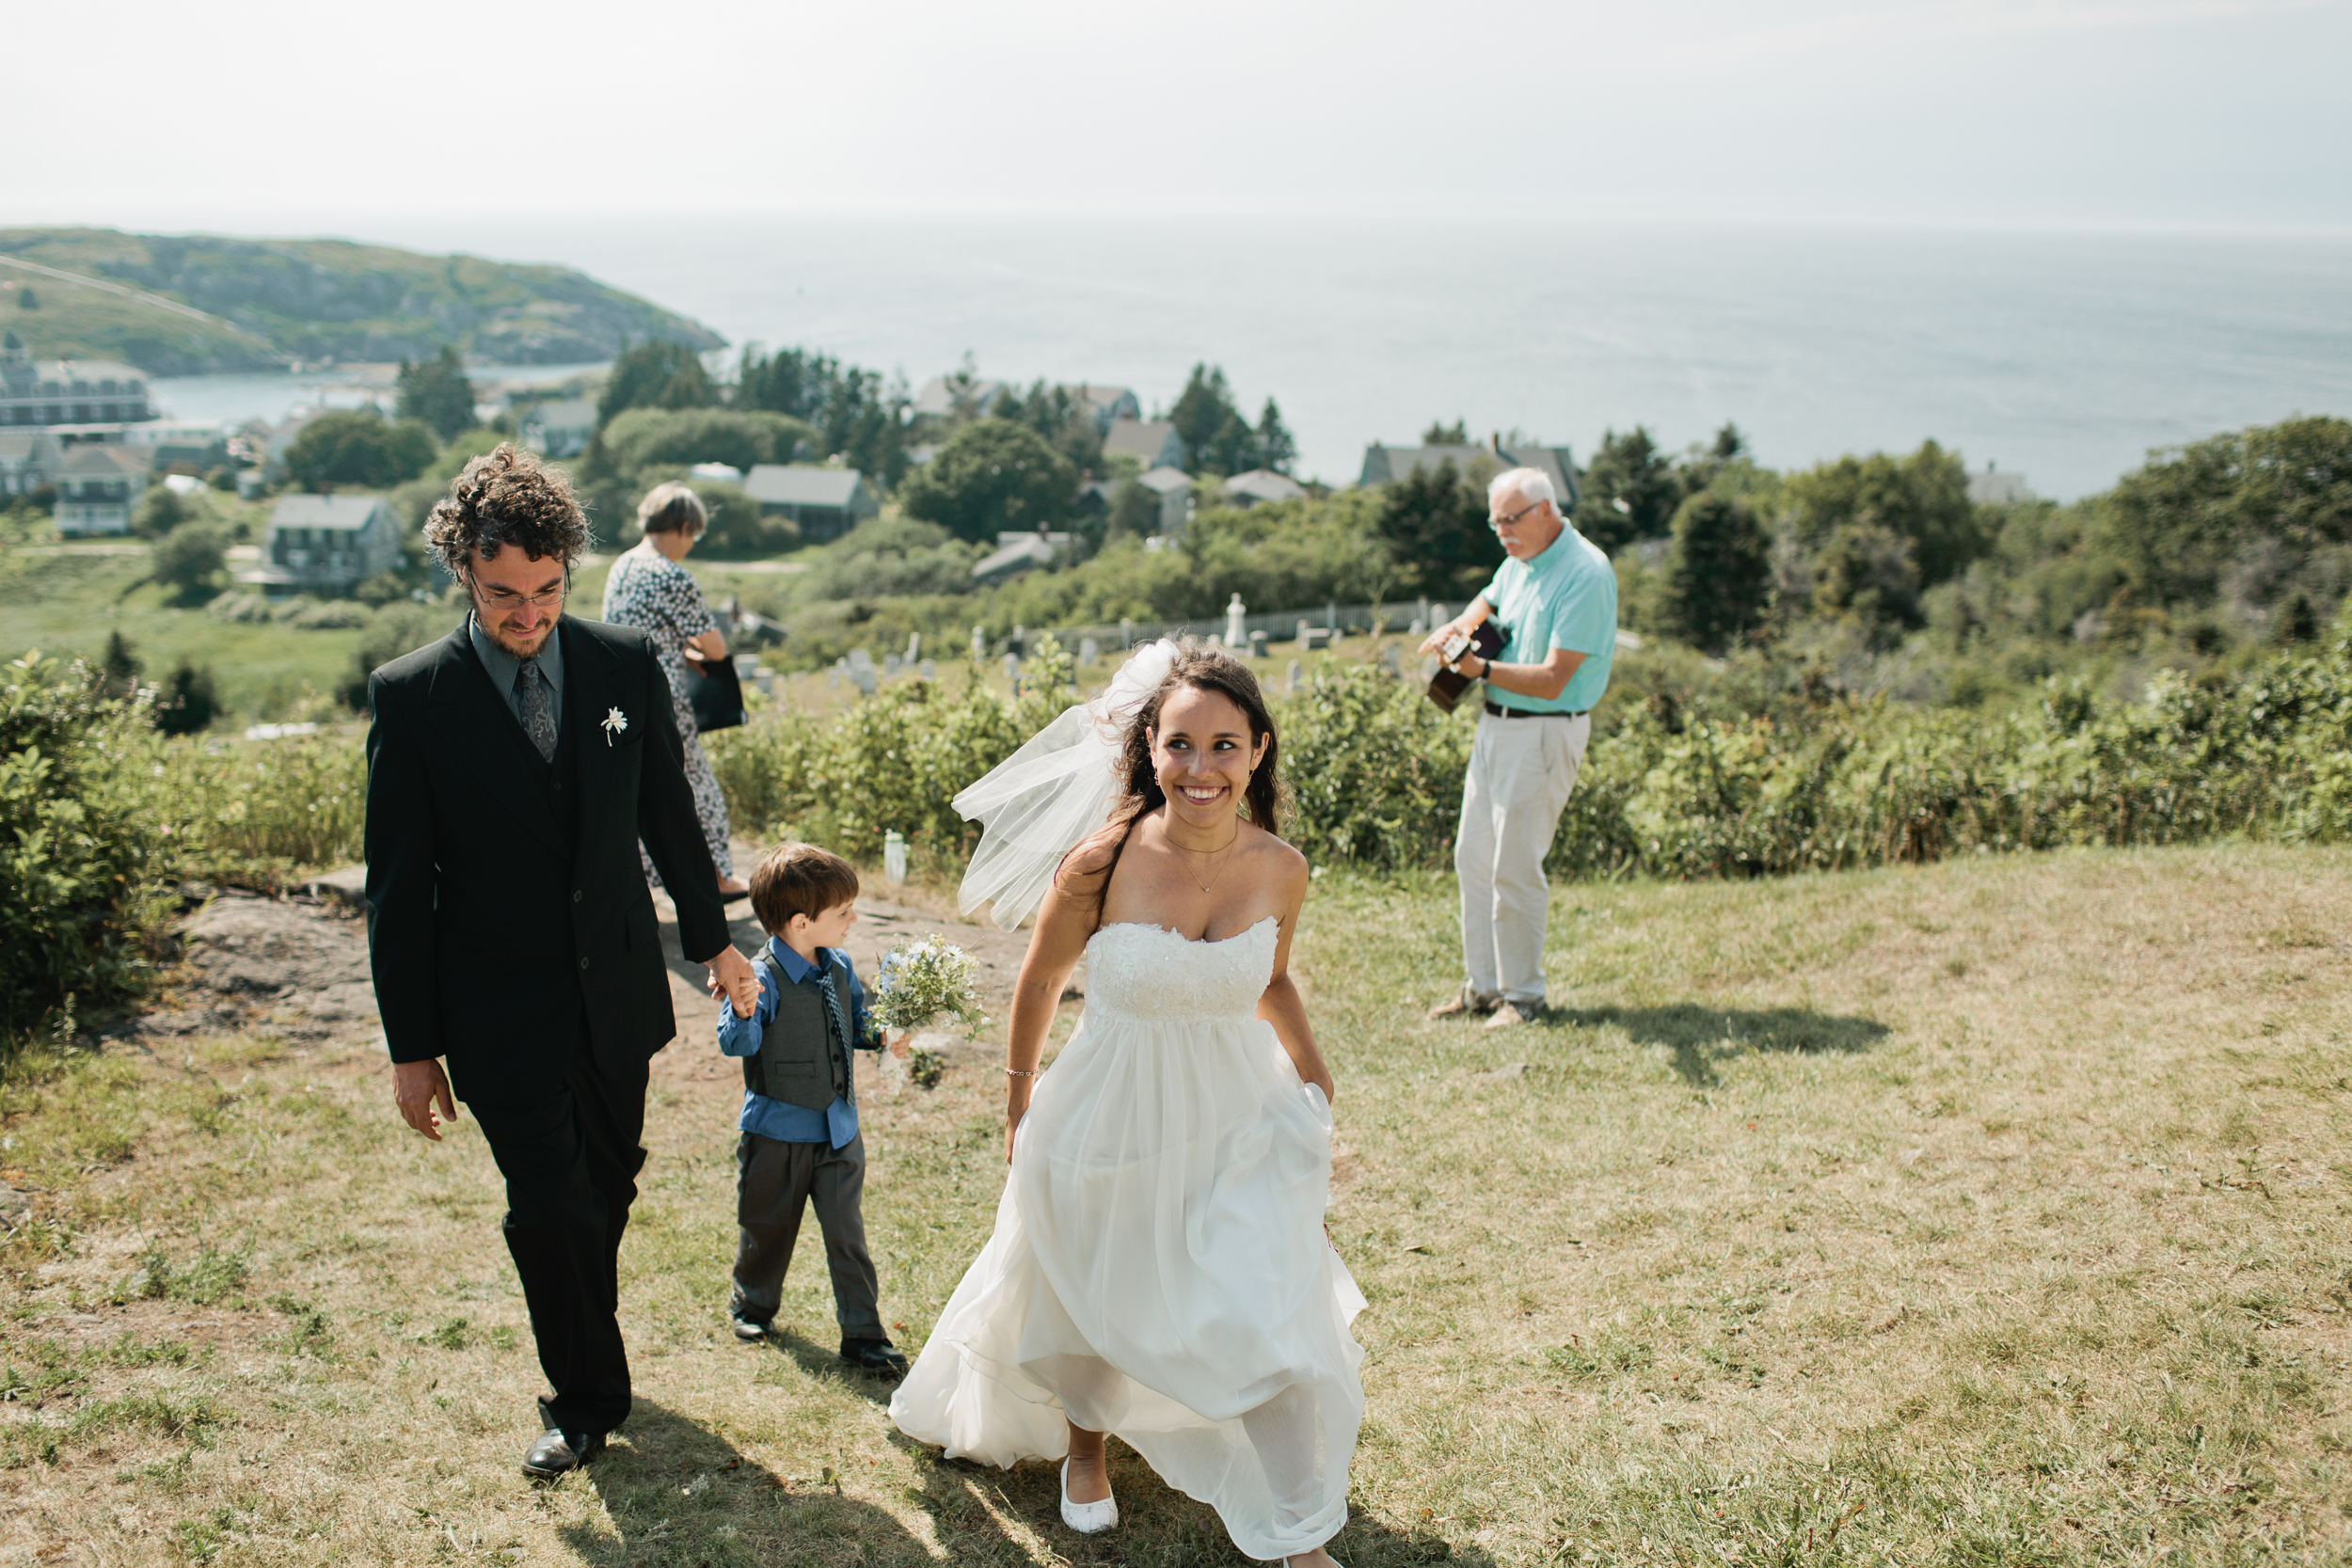 Monhegan-Island-Wedding-54.jpg